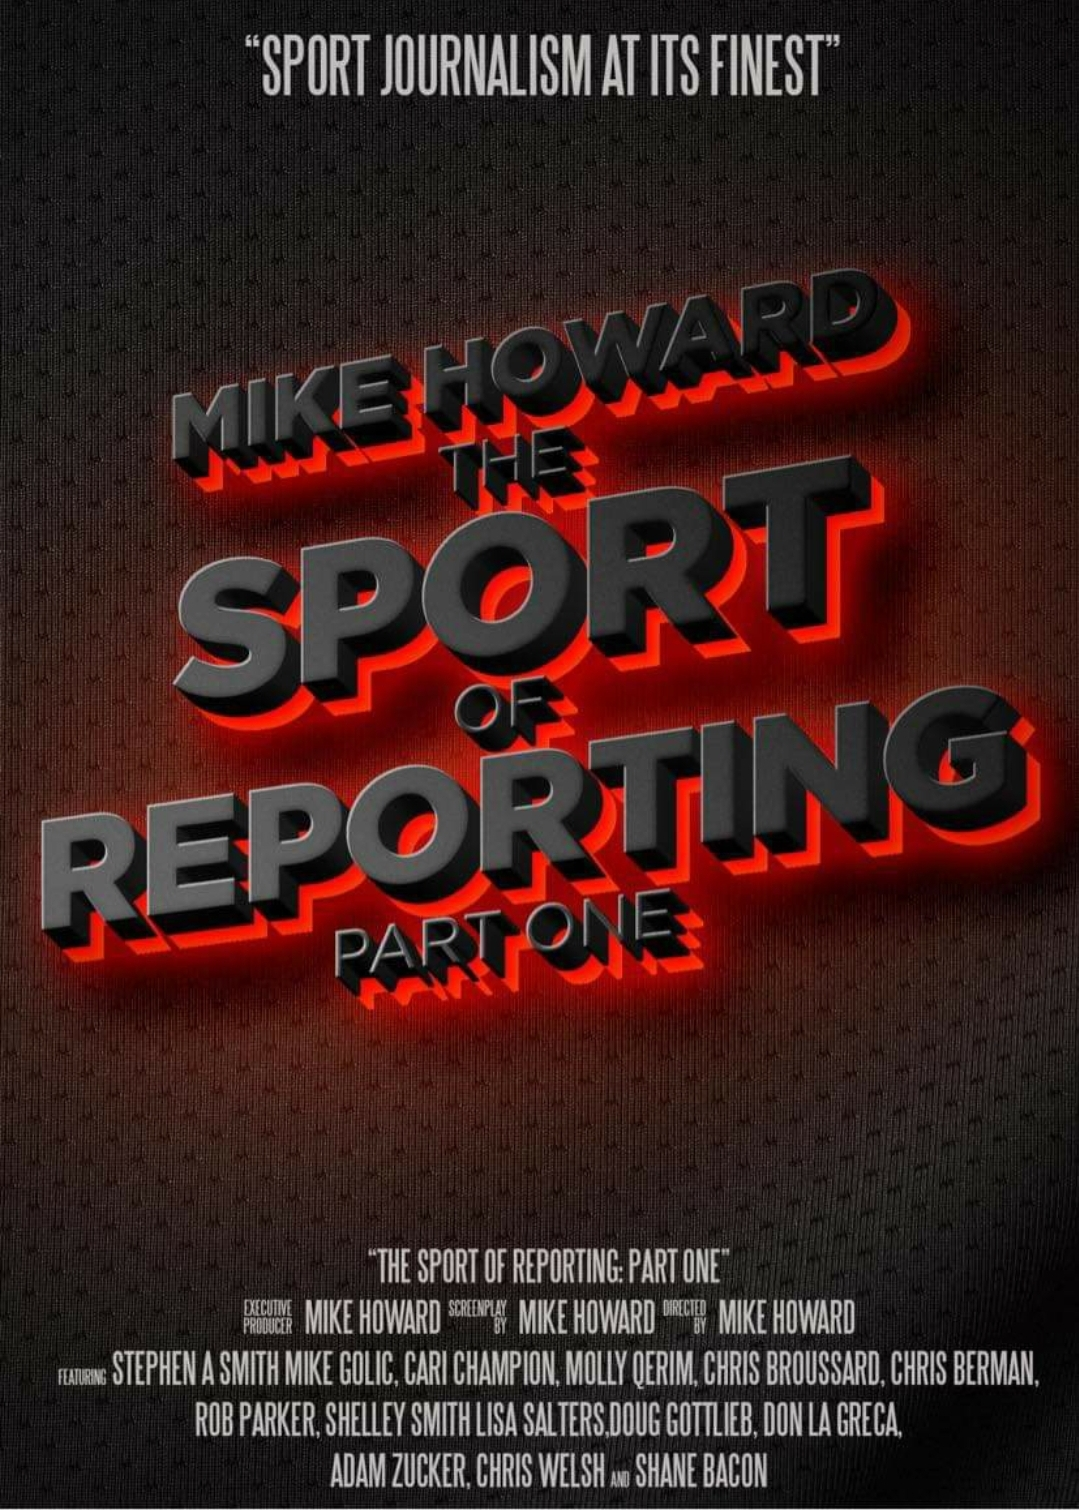 The Sport of Reporting